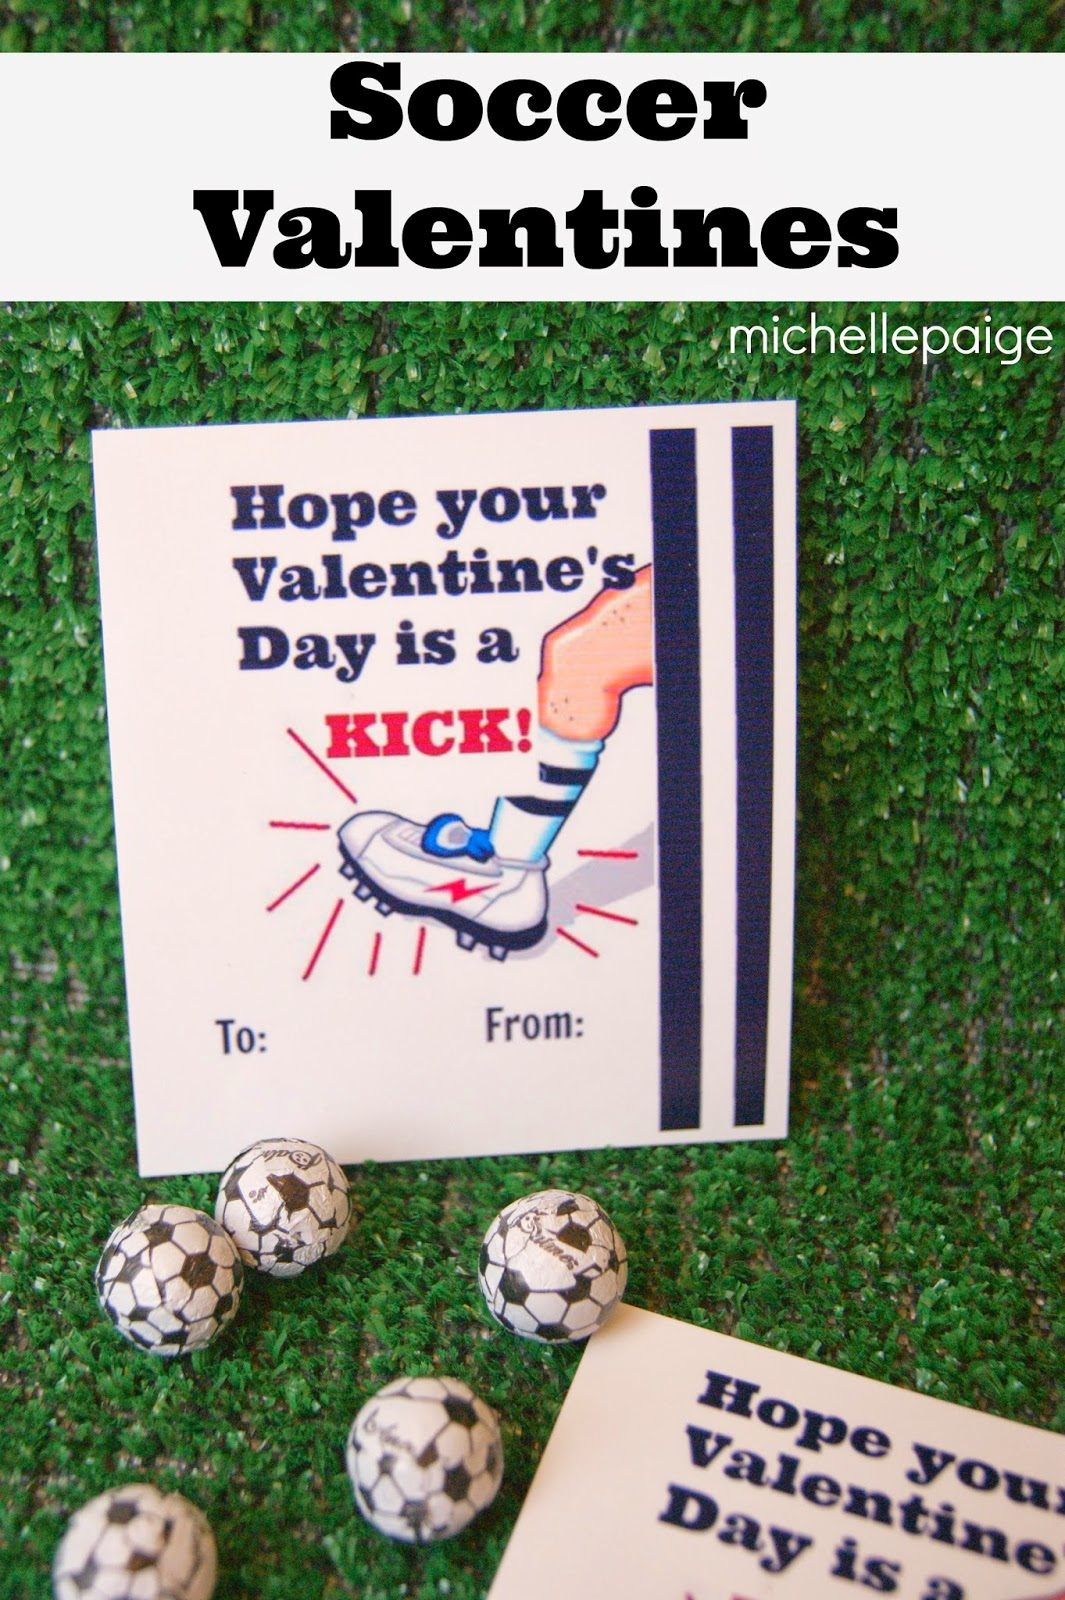 michelle paige blogs: Valentines for Boys-- Printable Soccer ...